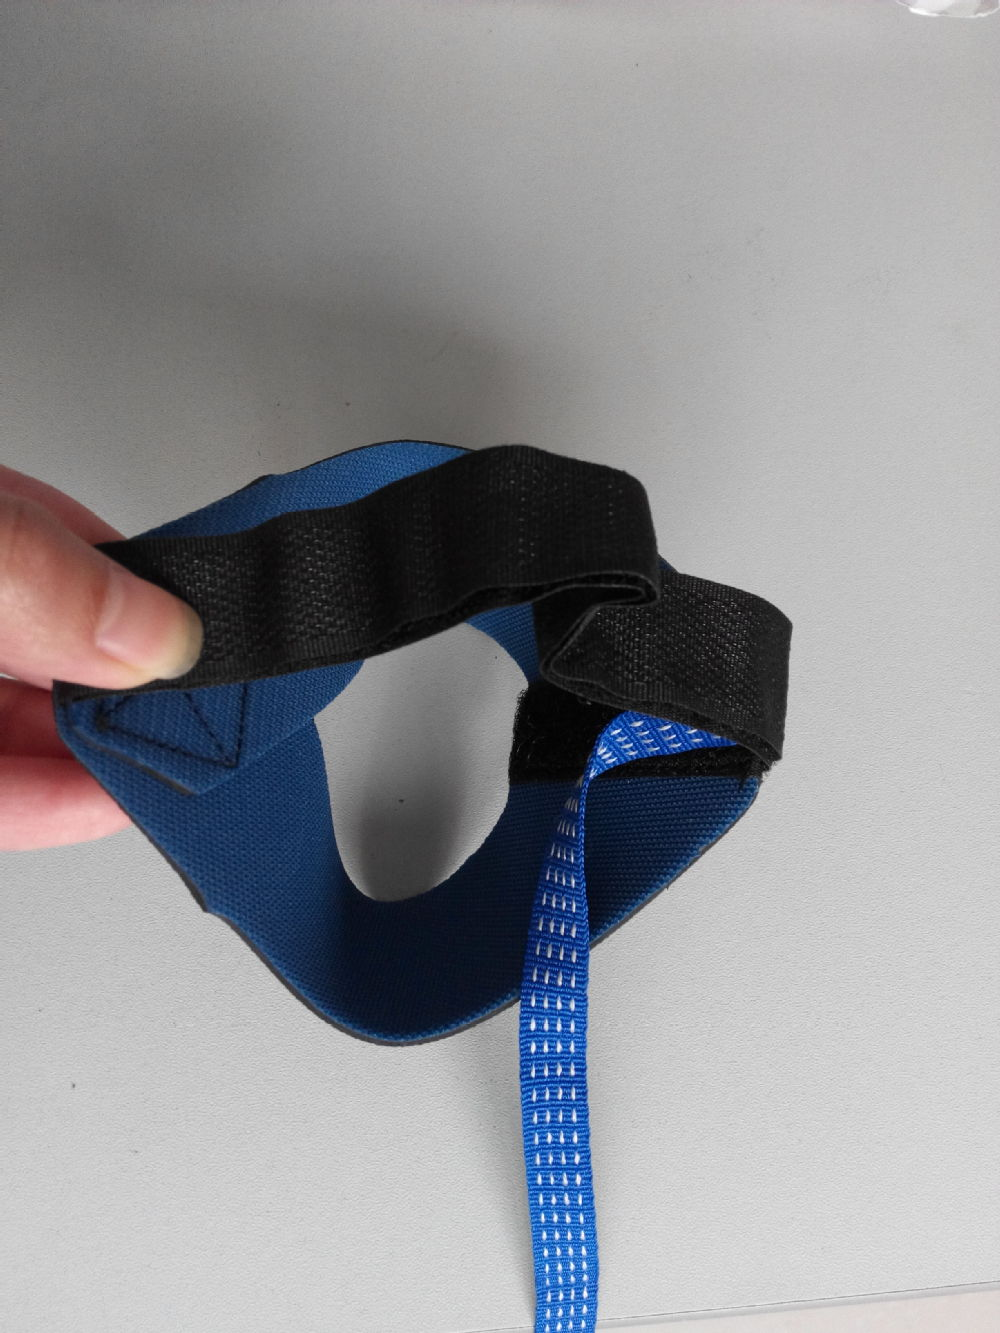 heel/Grounding Straps for cleanroom.